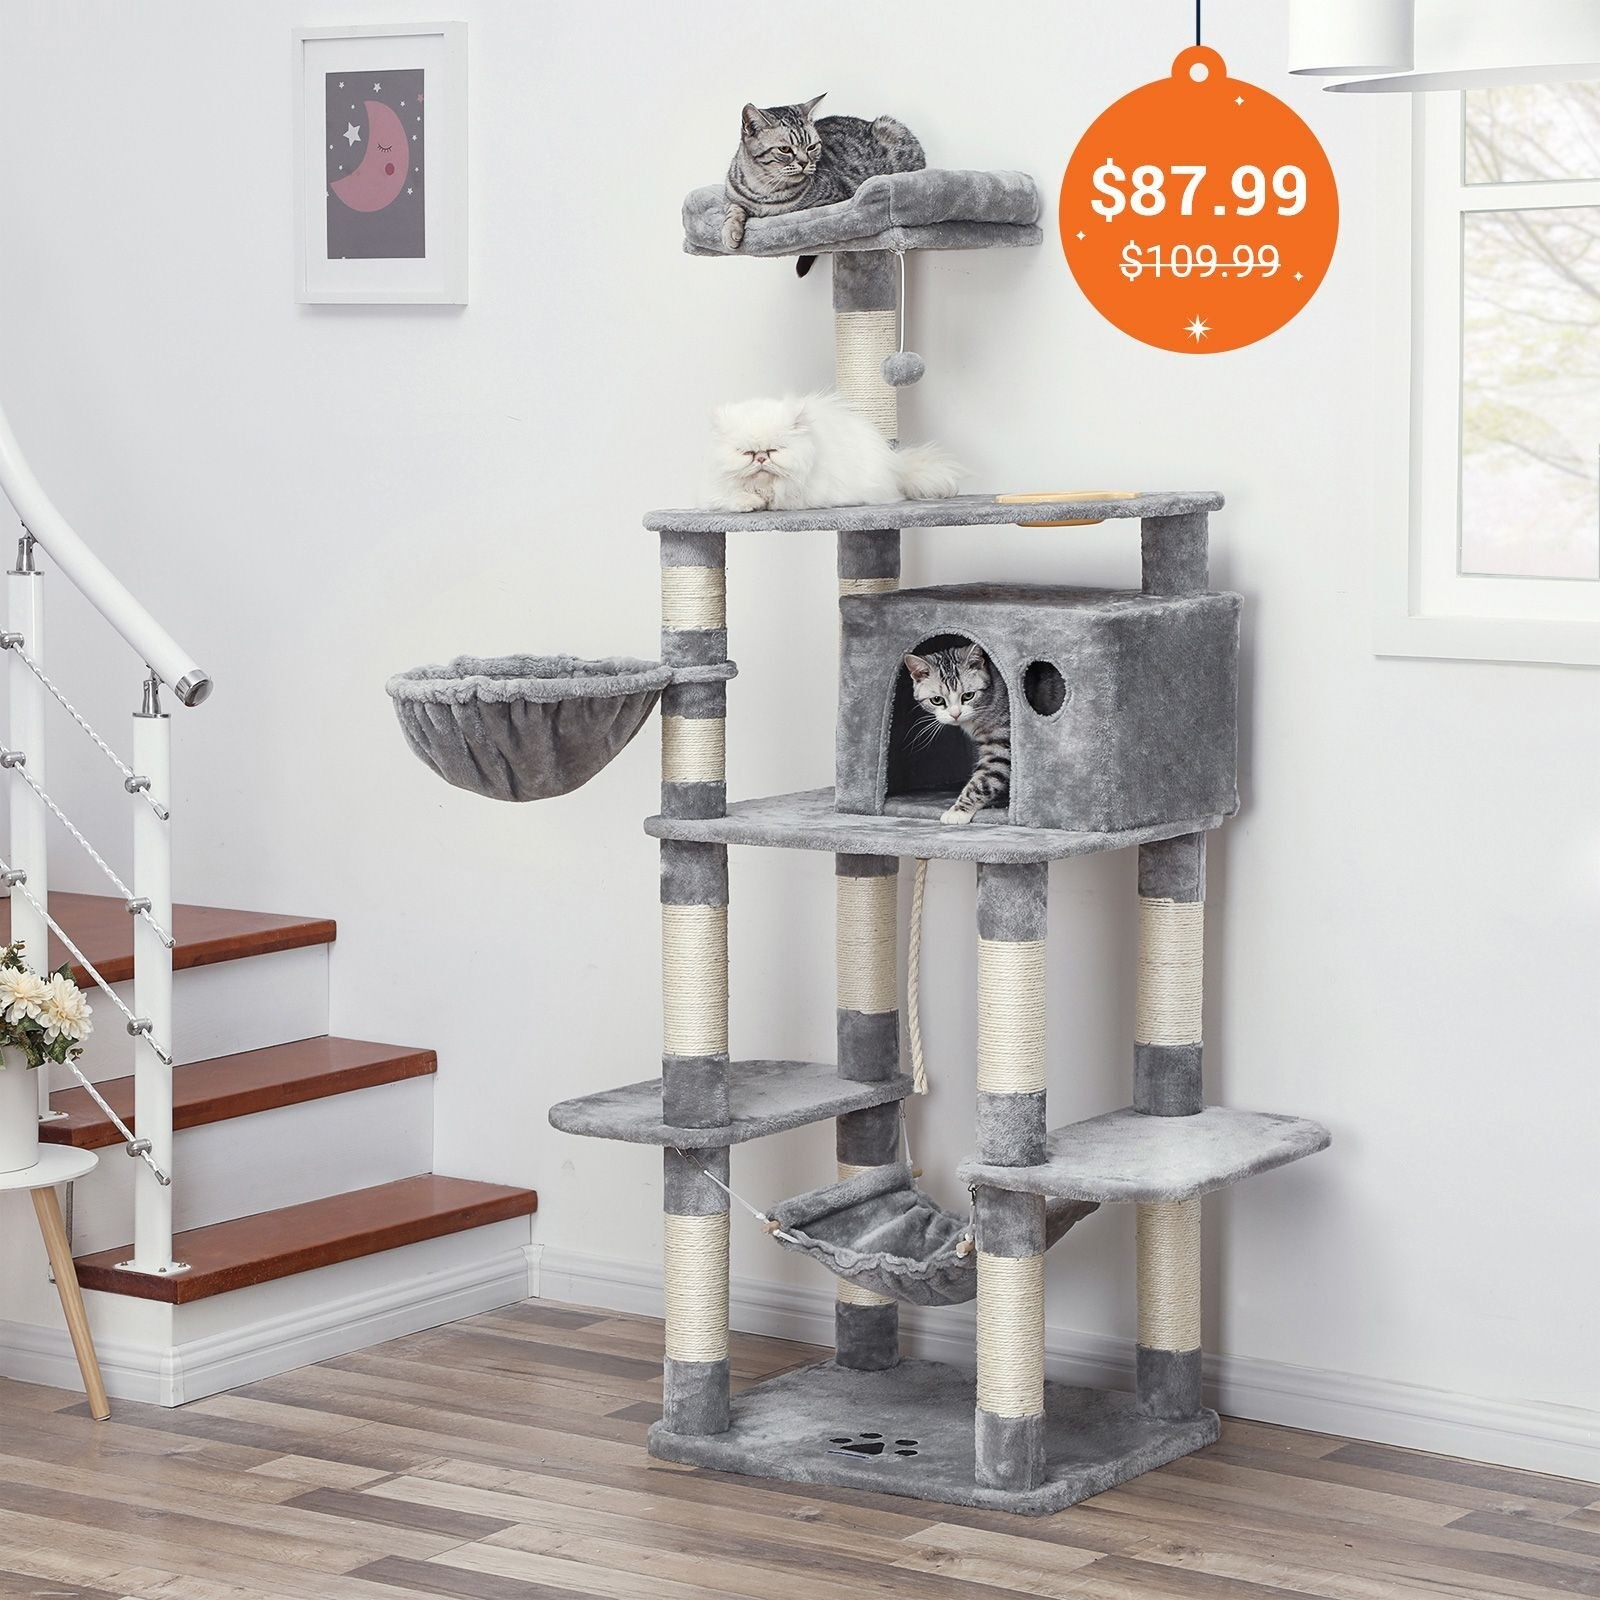 How To Choose Cat Trees & Condos